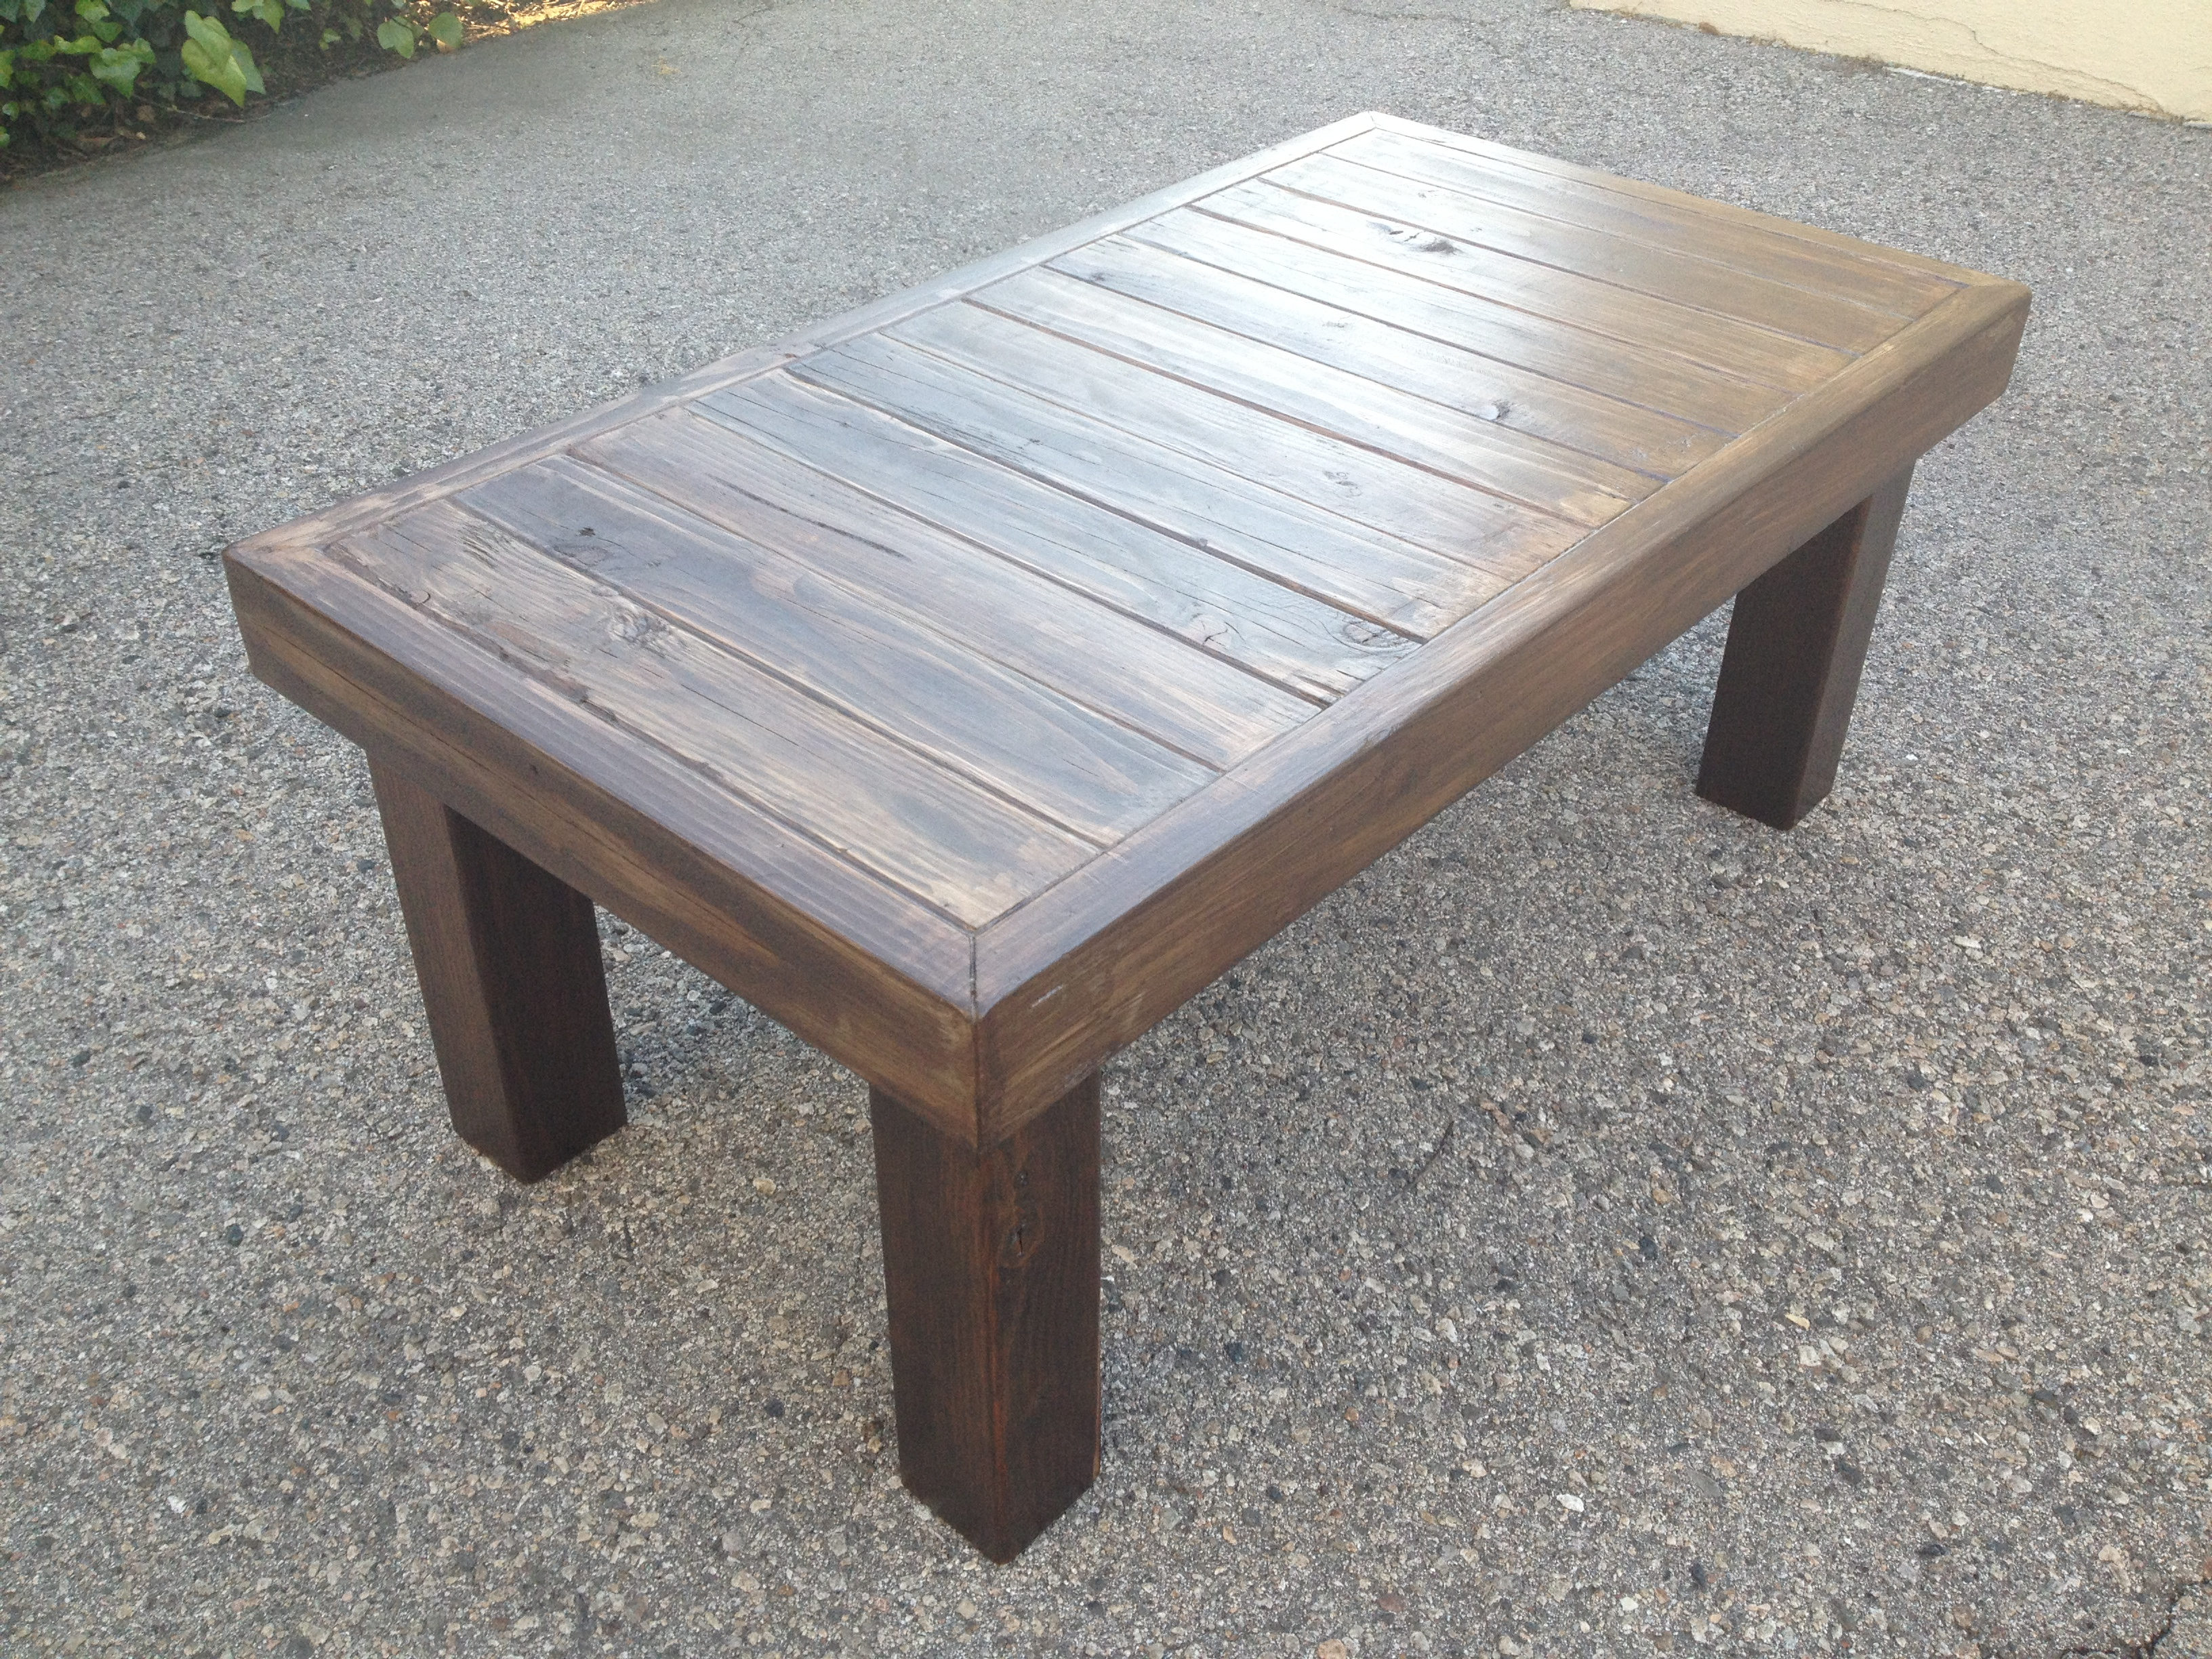 wood coffee table design plans photo - 5